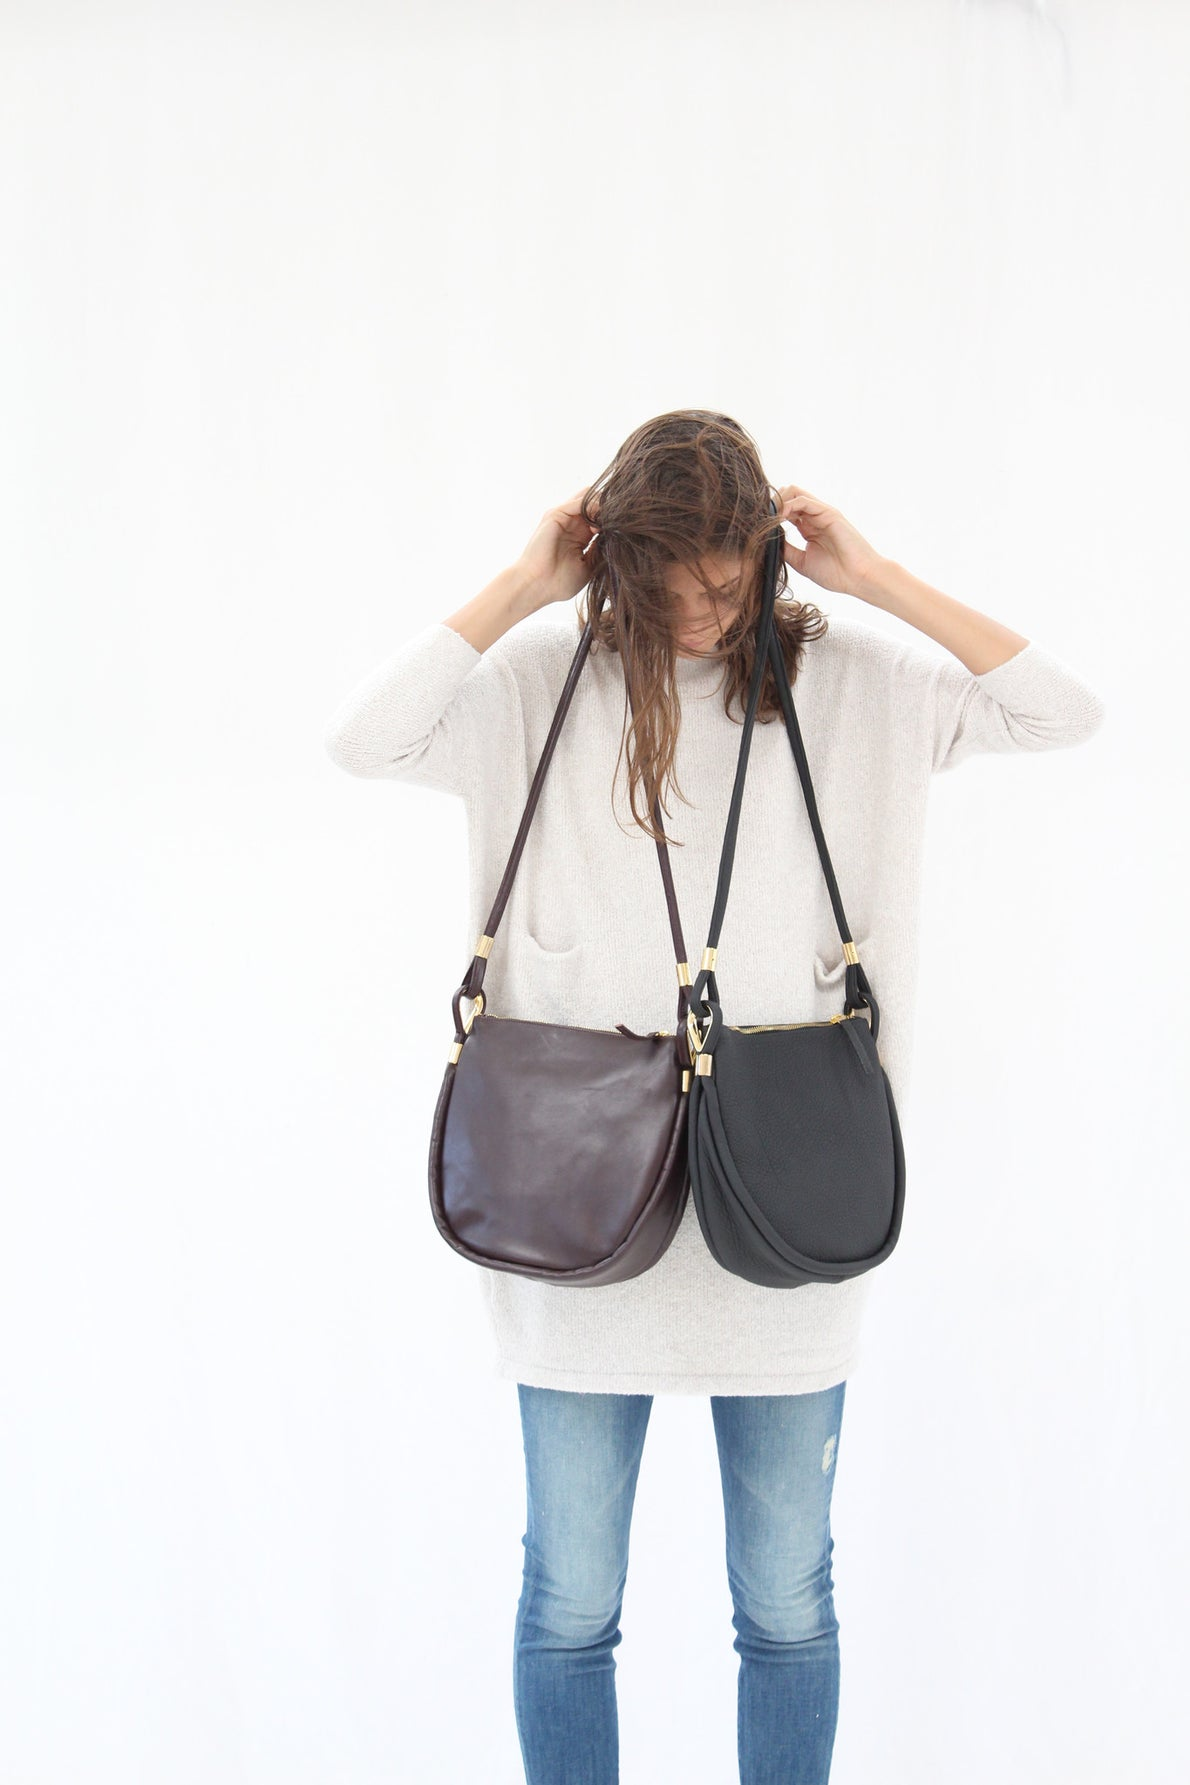 Sea Sack Bags In Black & Currant